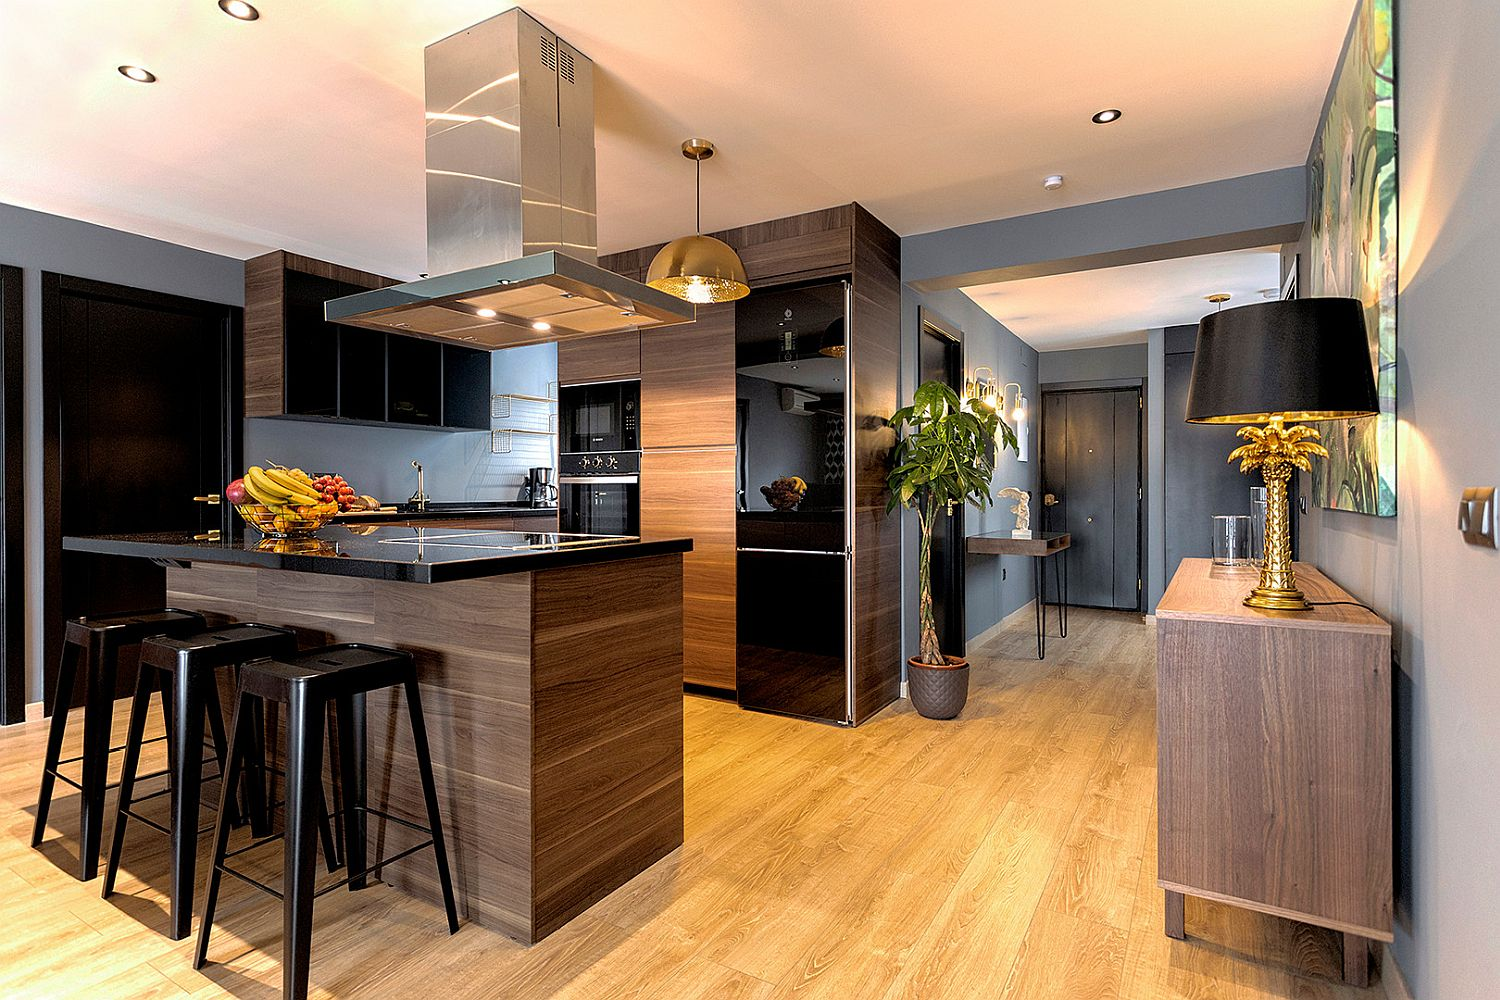 Black appliances add gloss and class to the contemporary kitchen in wood and white